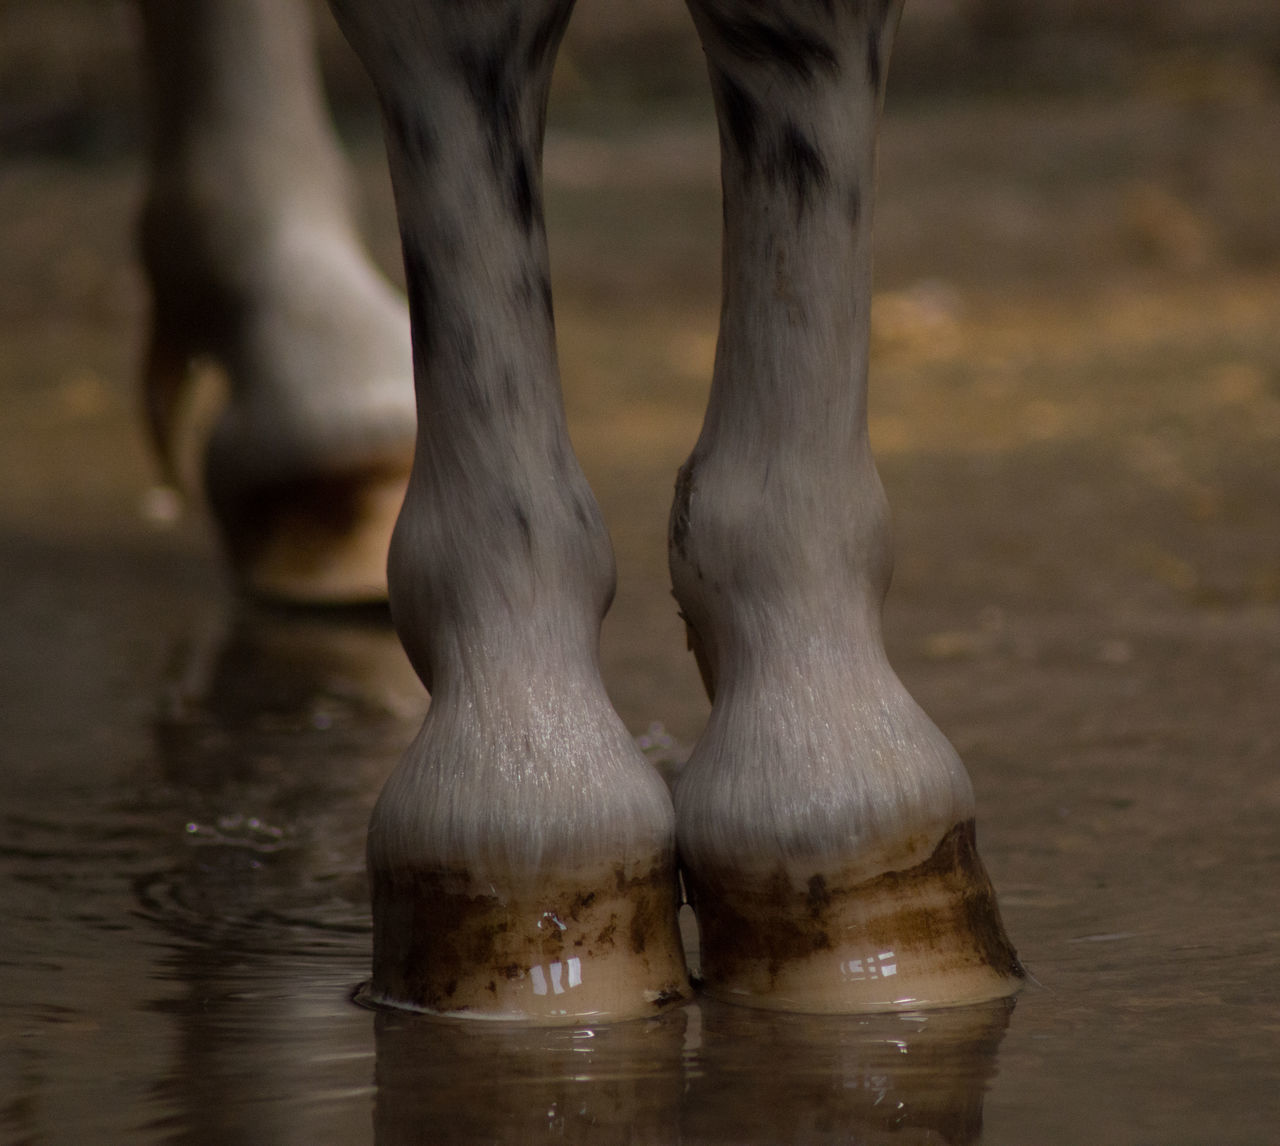 Chute Cleaning Day Feet Girl Horse Shoes Horse, Pferd, Ride, Riding, Outdoor Love ♥ Lovely Petting Pony Pony❤️ Washing